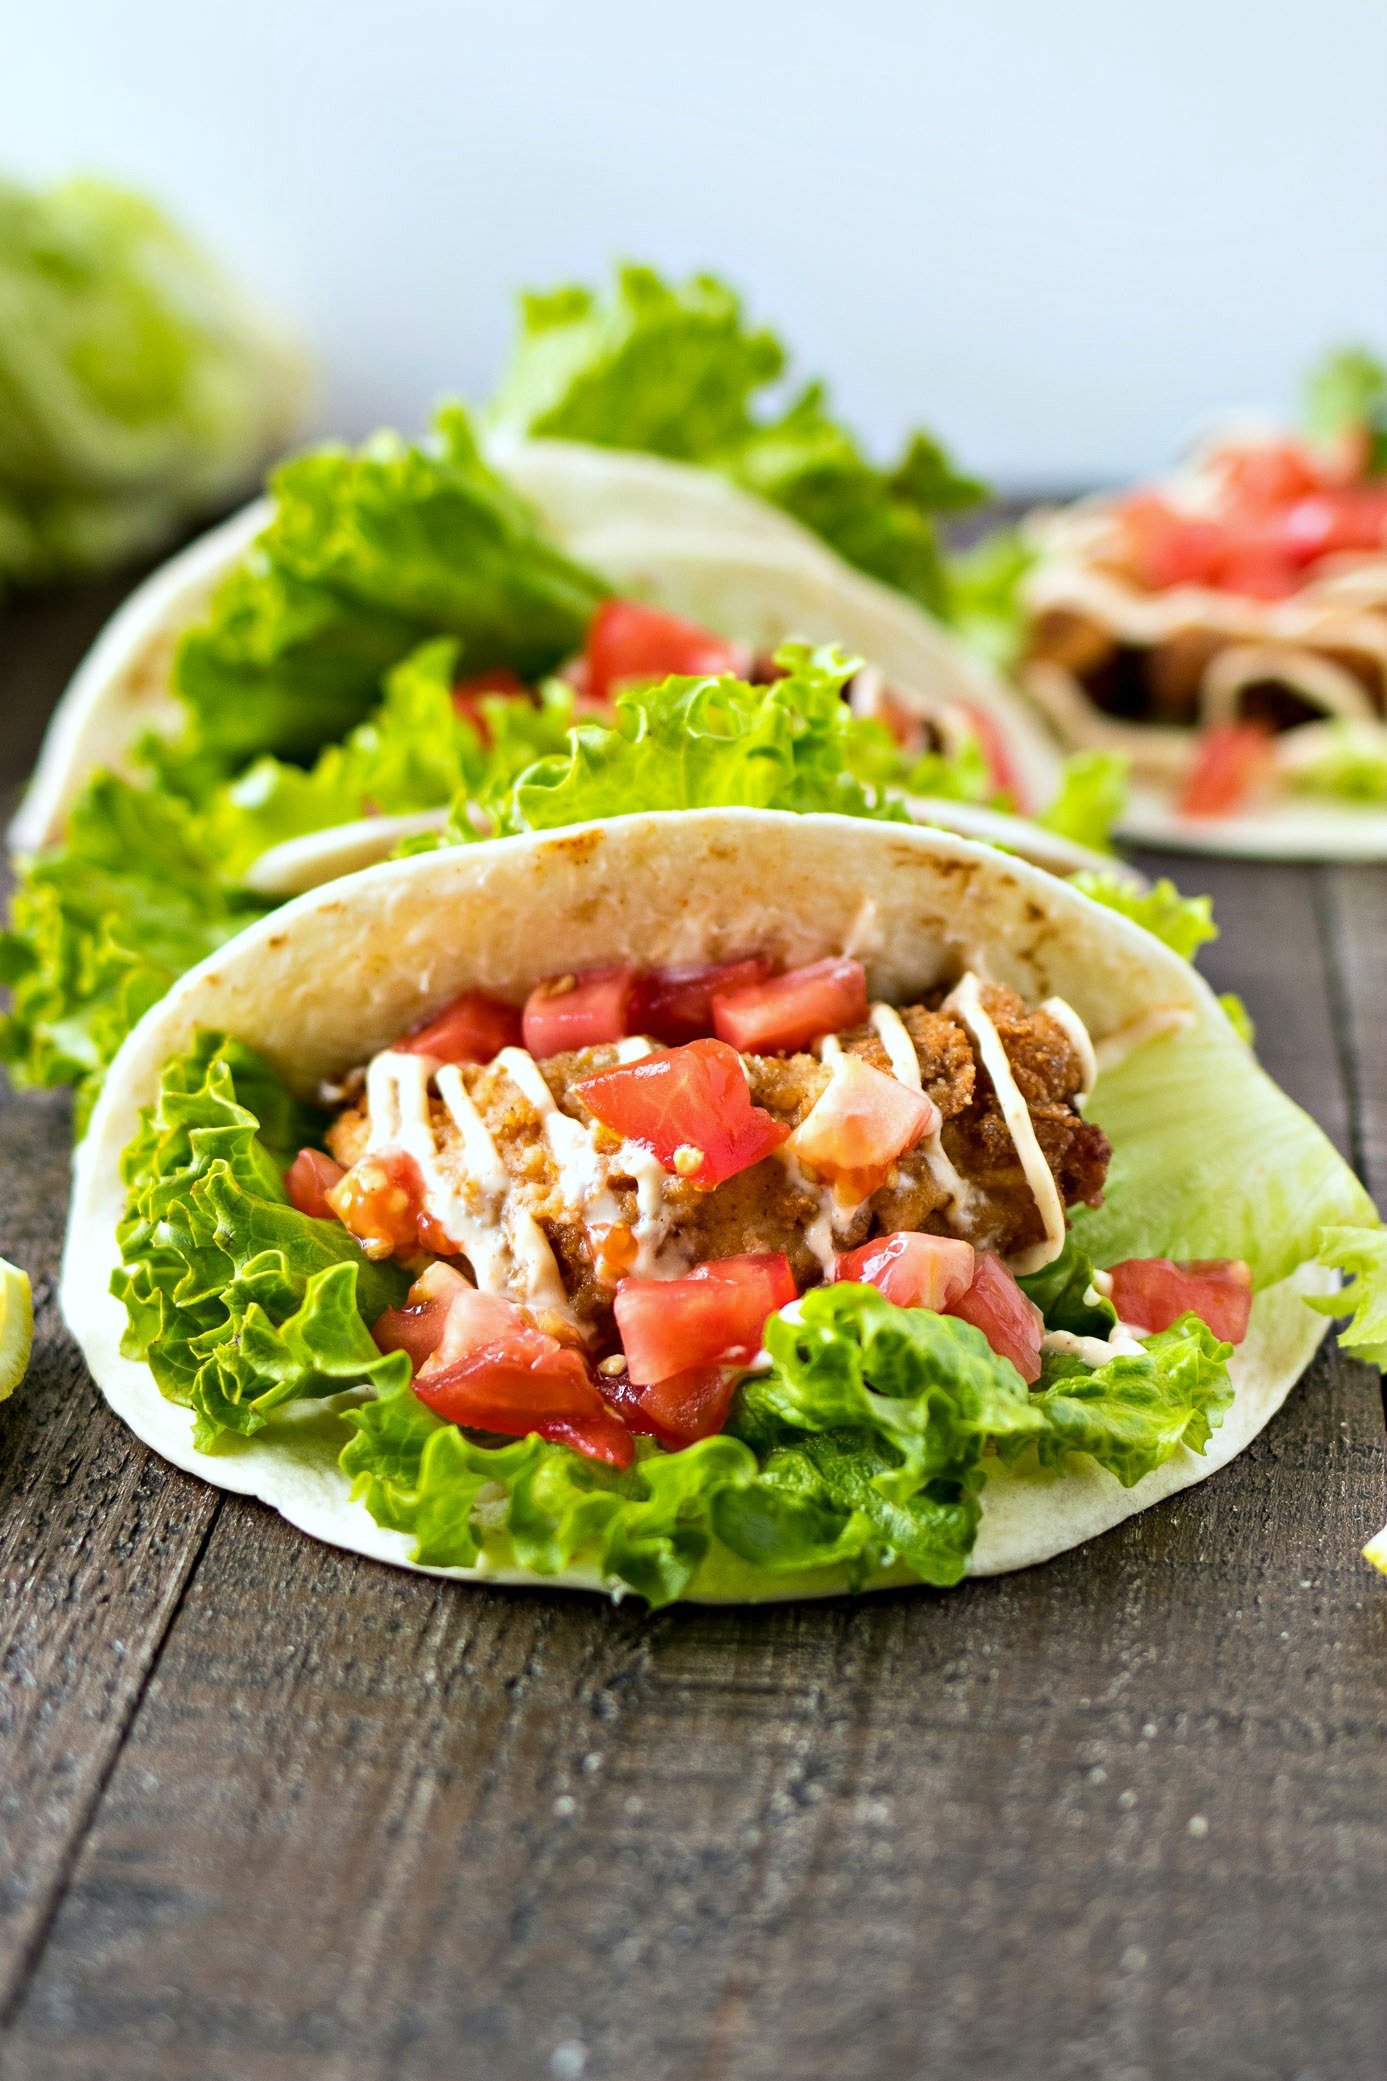 Fried Chicken Tacos filled with chicken, lettuce and tomatoes